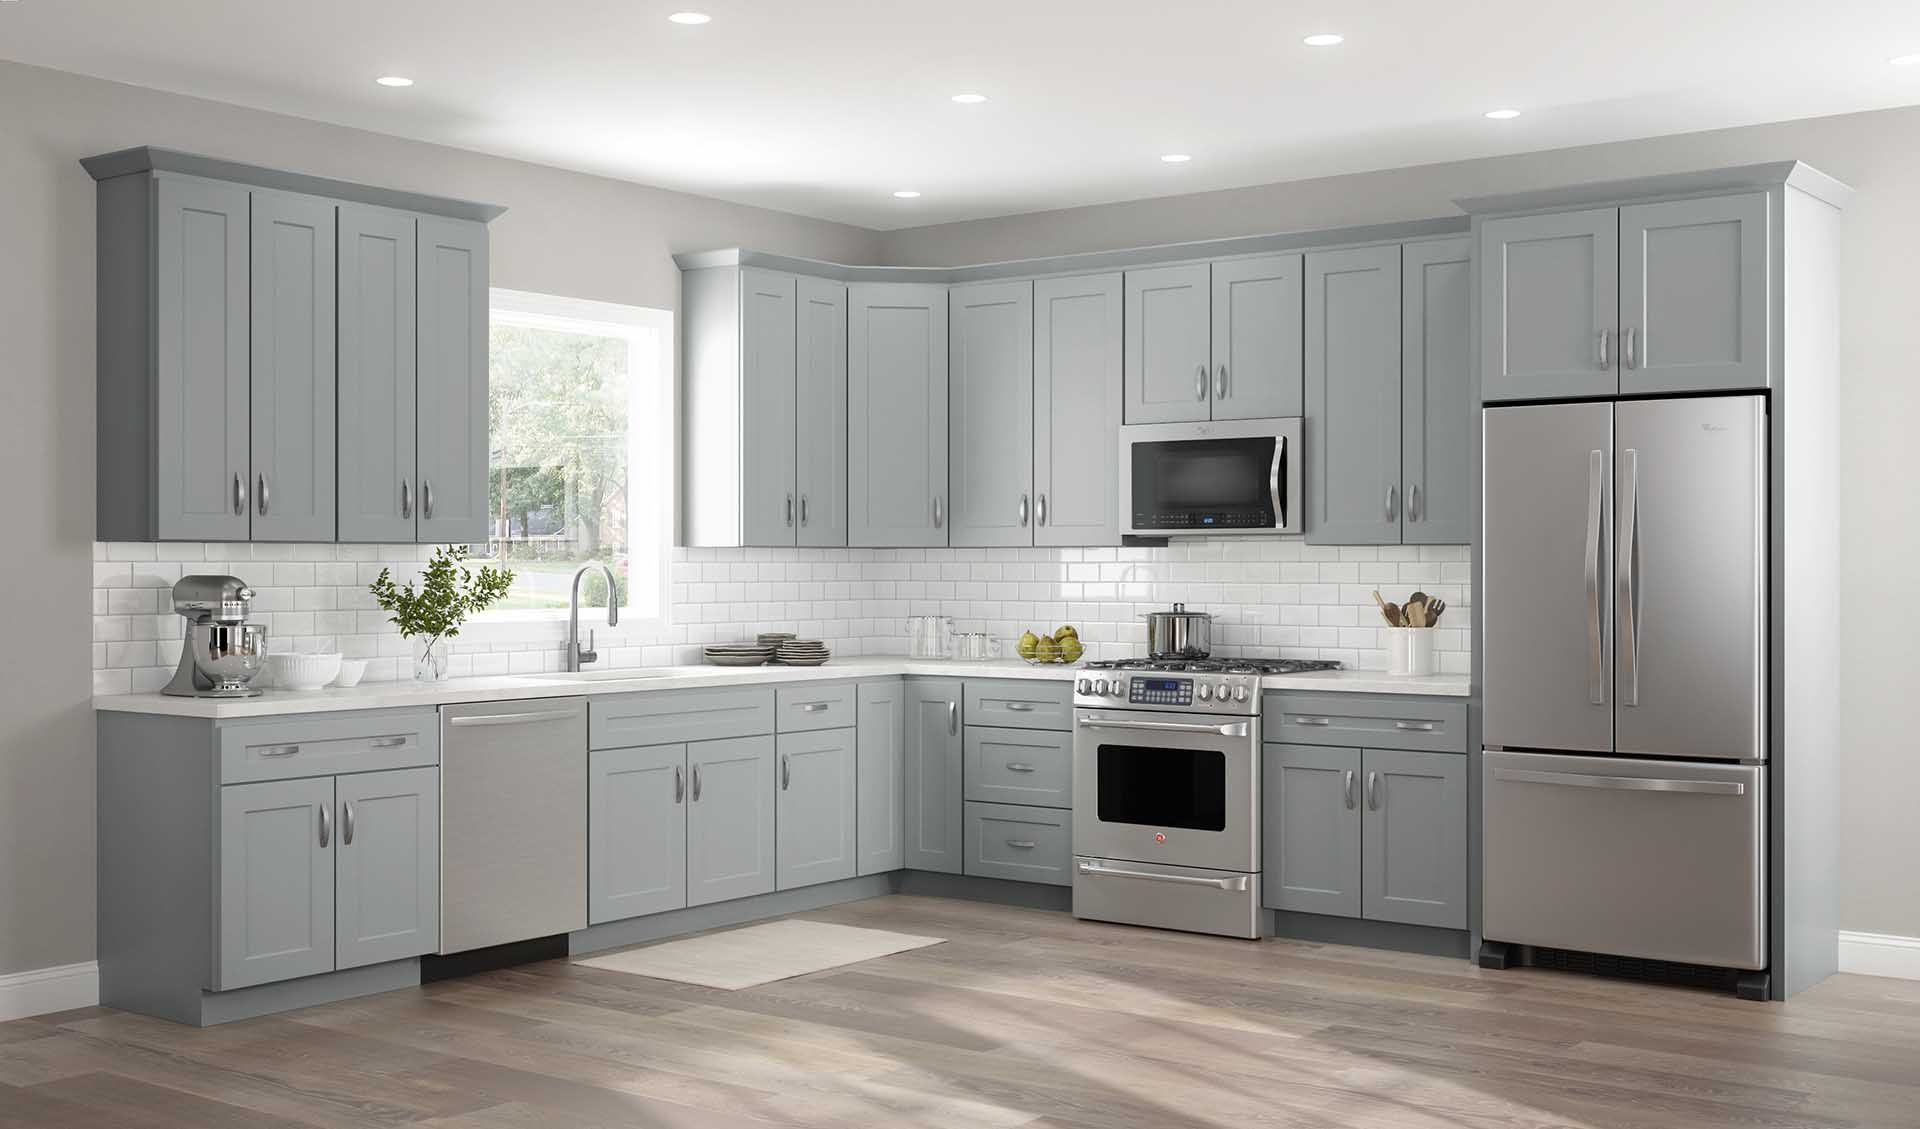 Kitchen Cabinets Kountry Cabinets Home Furnishings Diy Kitchen Remodel Cabinet Kitchen Cabinets